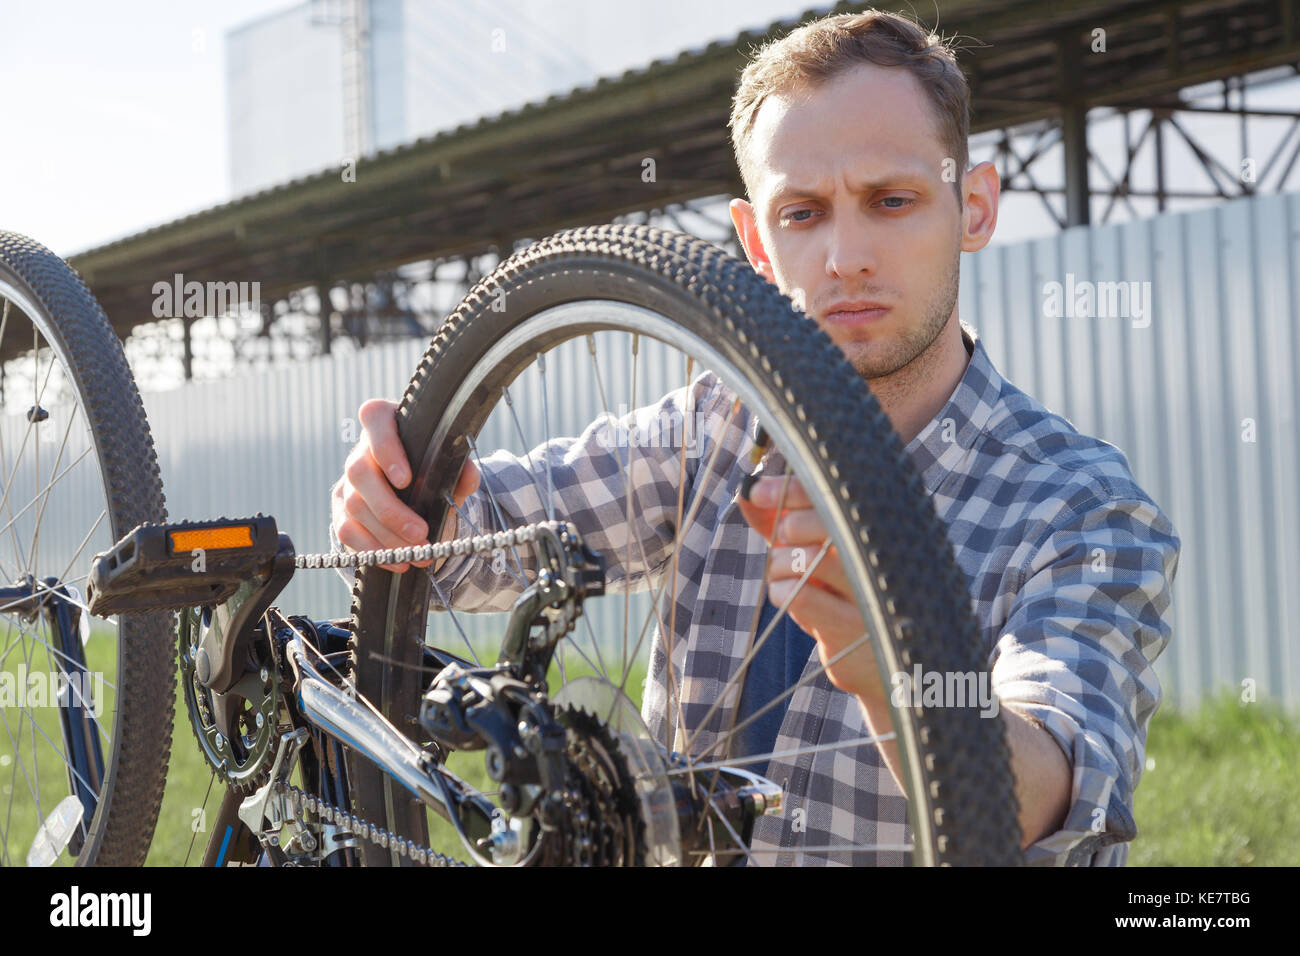 A concentrated craftsman is diagnosing bike malfunctions on the street - Stock Image